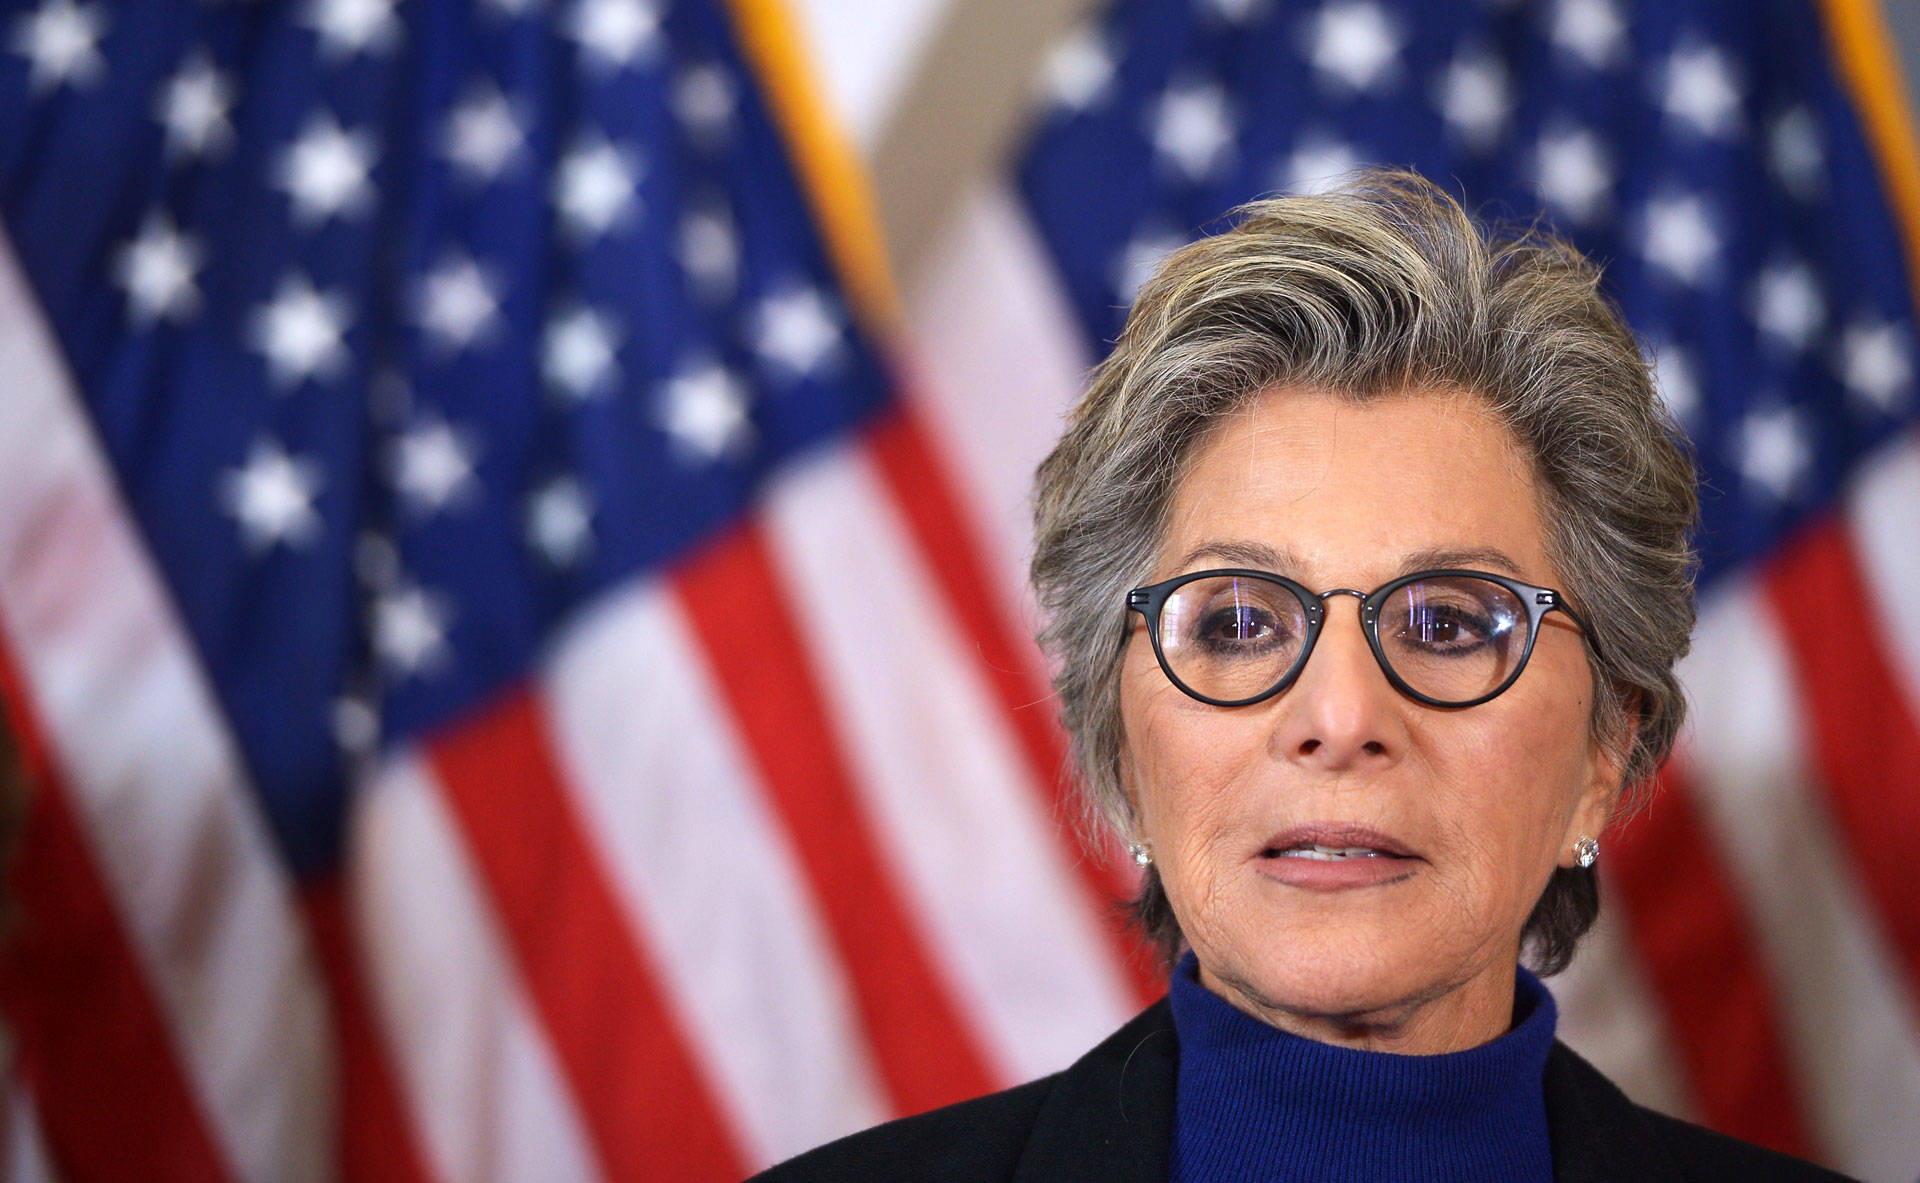 Barbara Boxer Speaks Out on Sexual Harassment in Congress